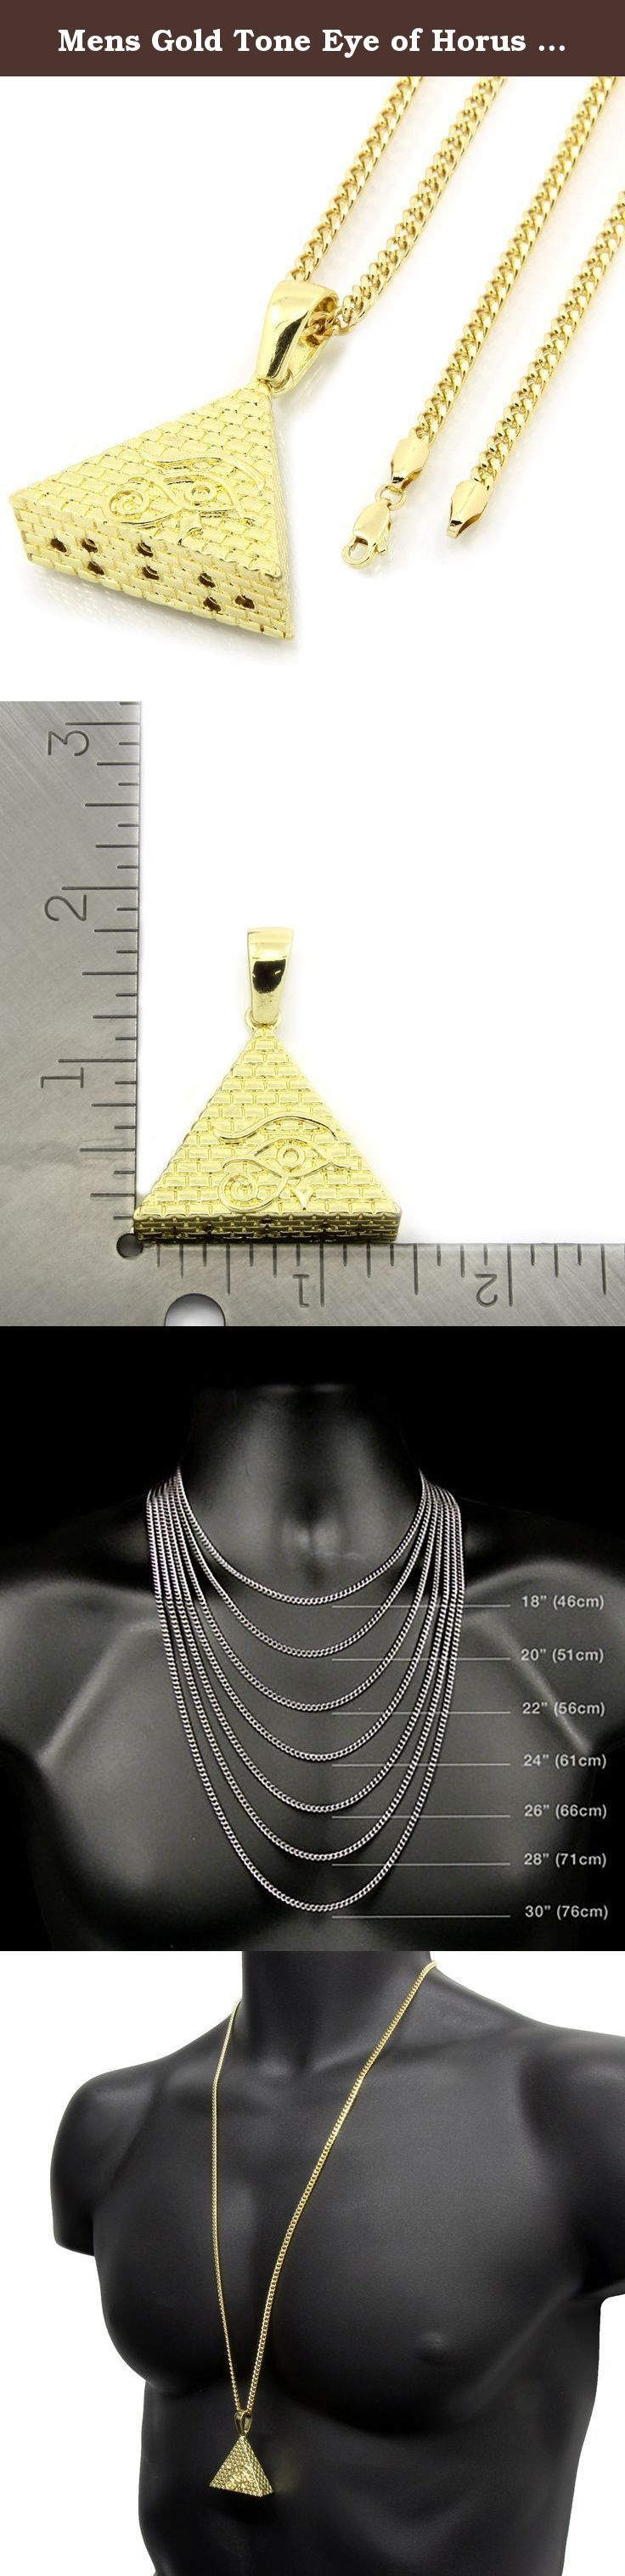 """Mens Gold Tone Eye of Horus Egyptian Pyramid Hip Hop Micro Pendant with 30"""" Inch 3mm Cuban Chain. Please keep in mind that this item is not real GOLD. This is a GOLD TONE Cuban Chain that measures 3 millimeters Wide and 30"""" inches long. And this a GOLD TONE Jesus pendant that measures 1"""" 7/8 inches long and 1"""" 3/8 inch wide."""